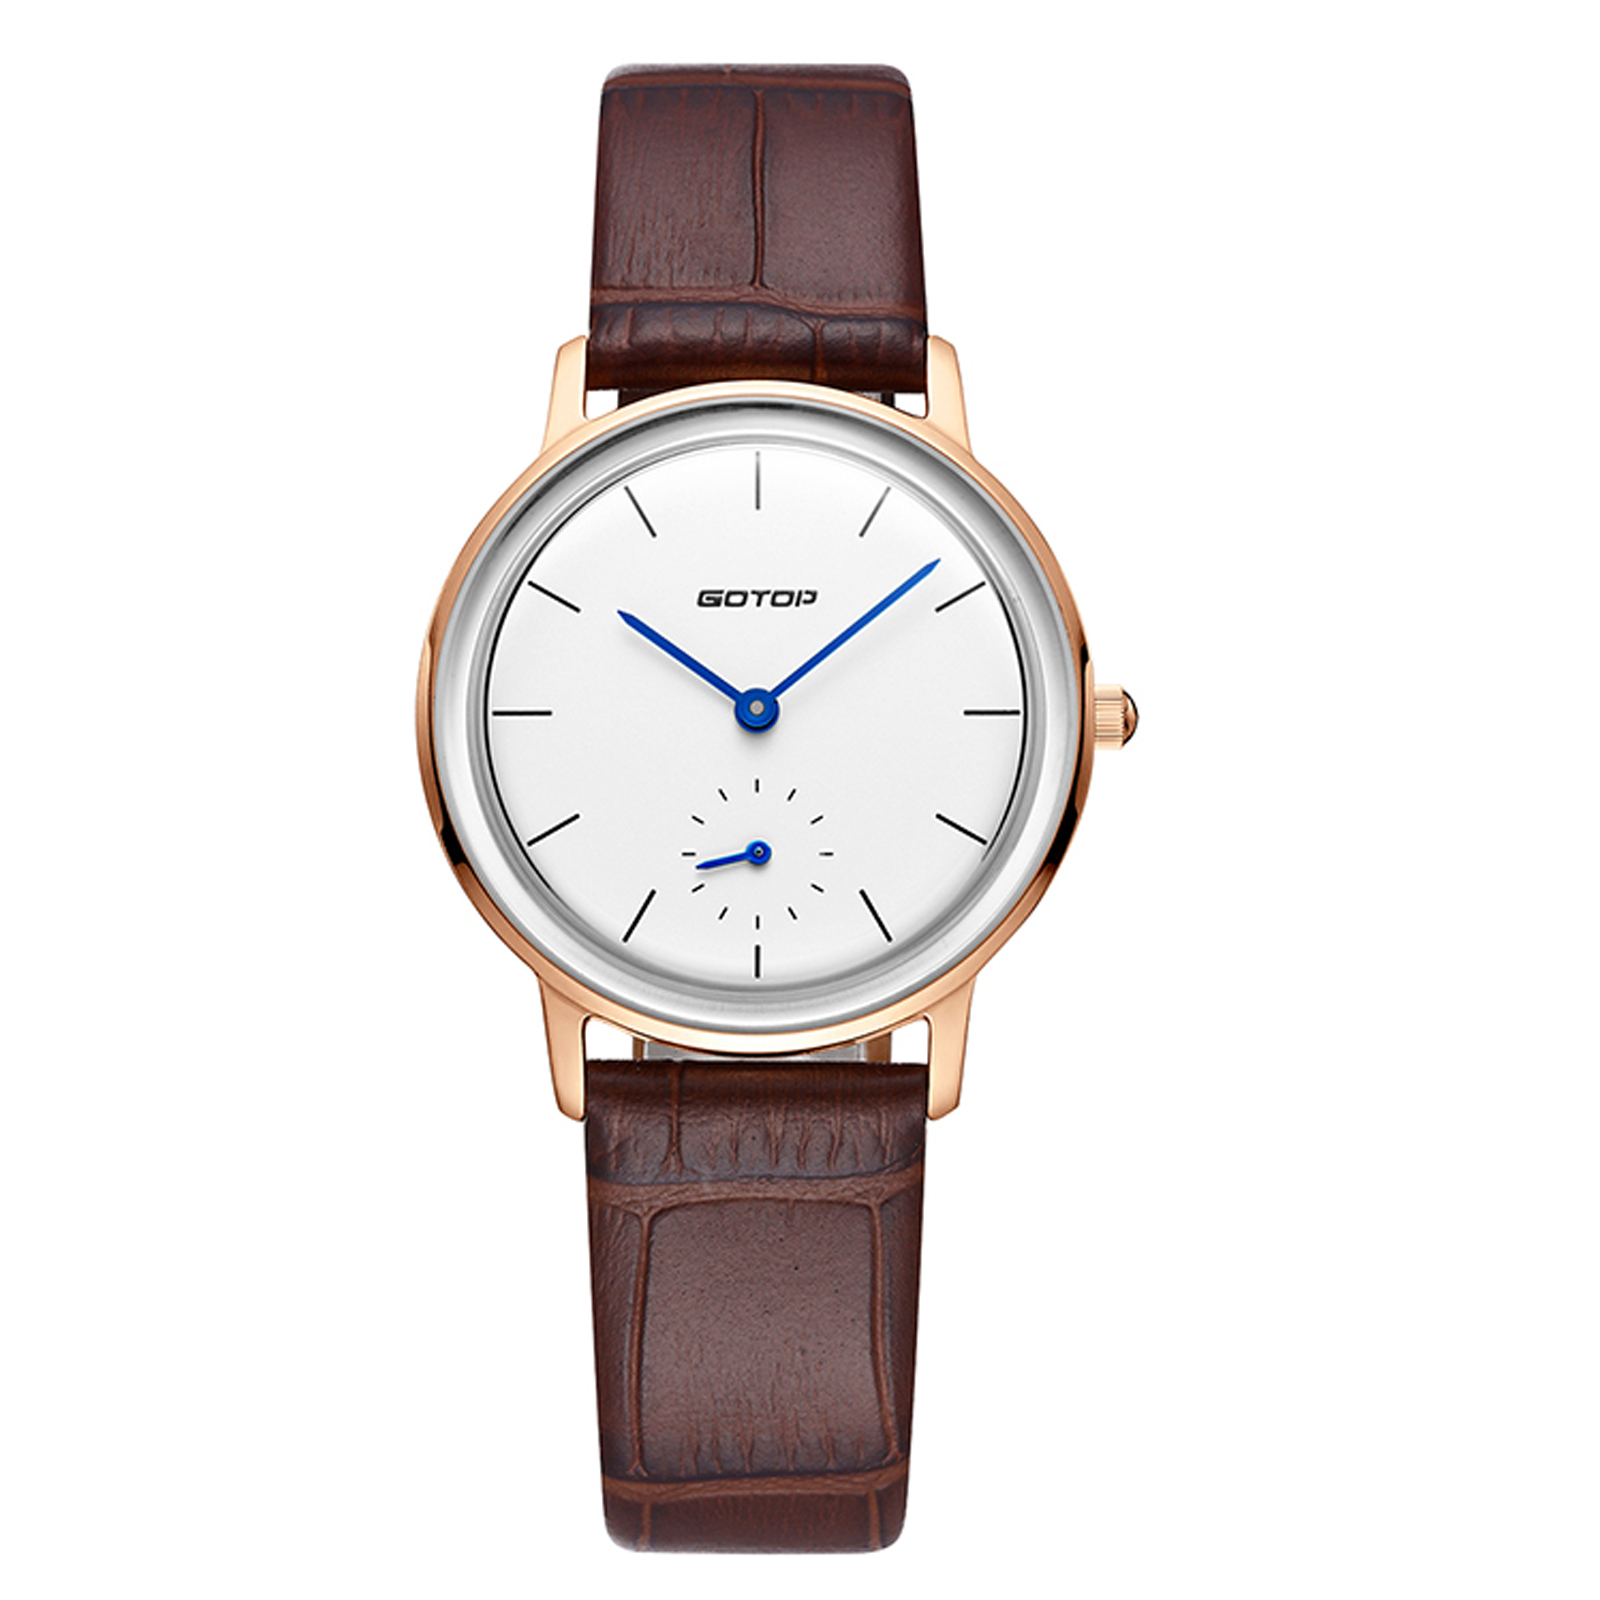 Men's Watch In Rose Gold With Brown Leather Strap